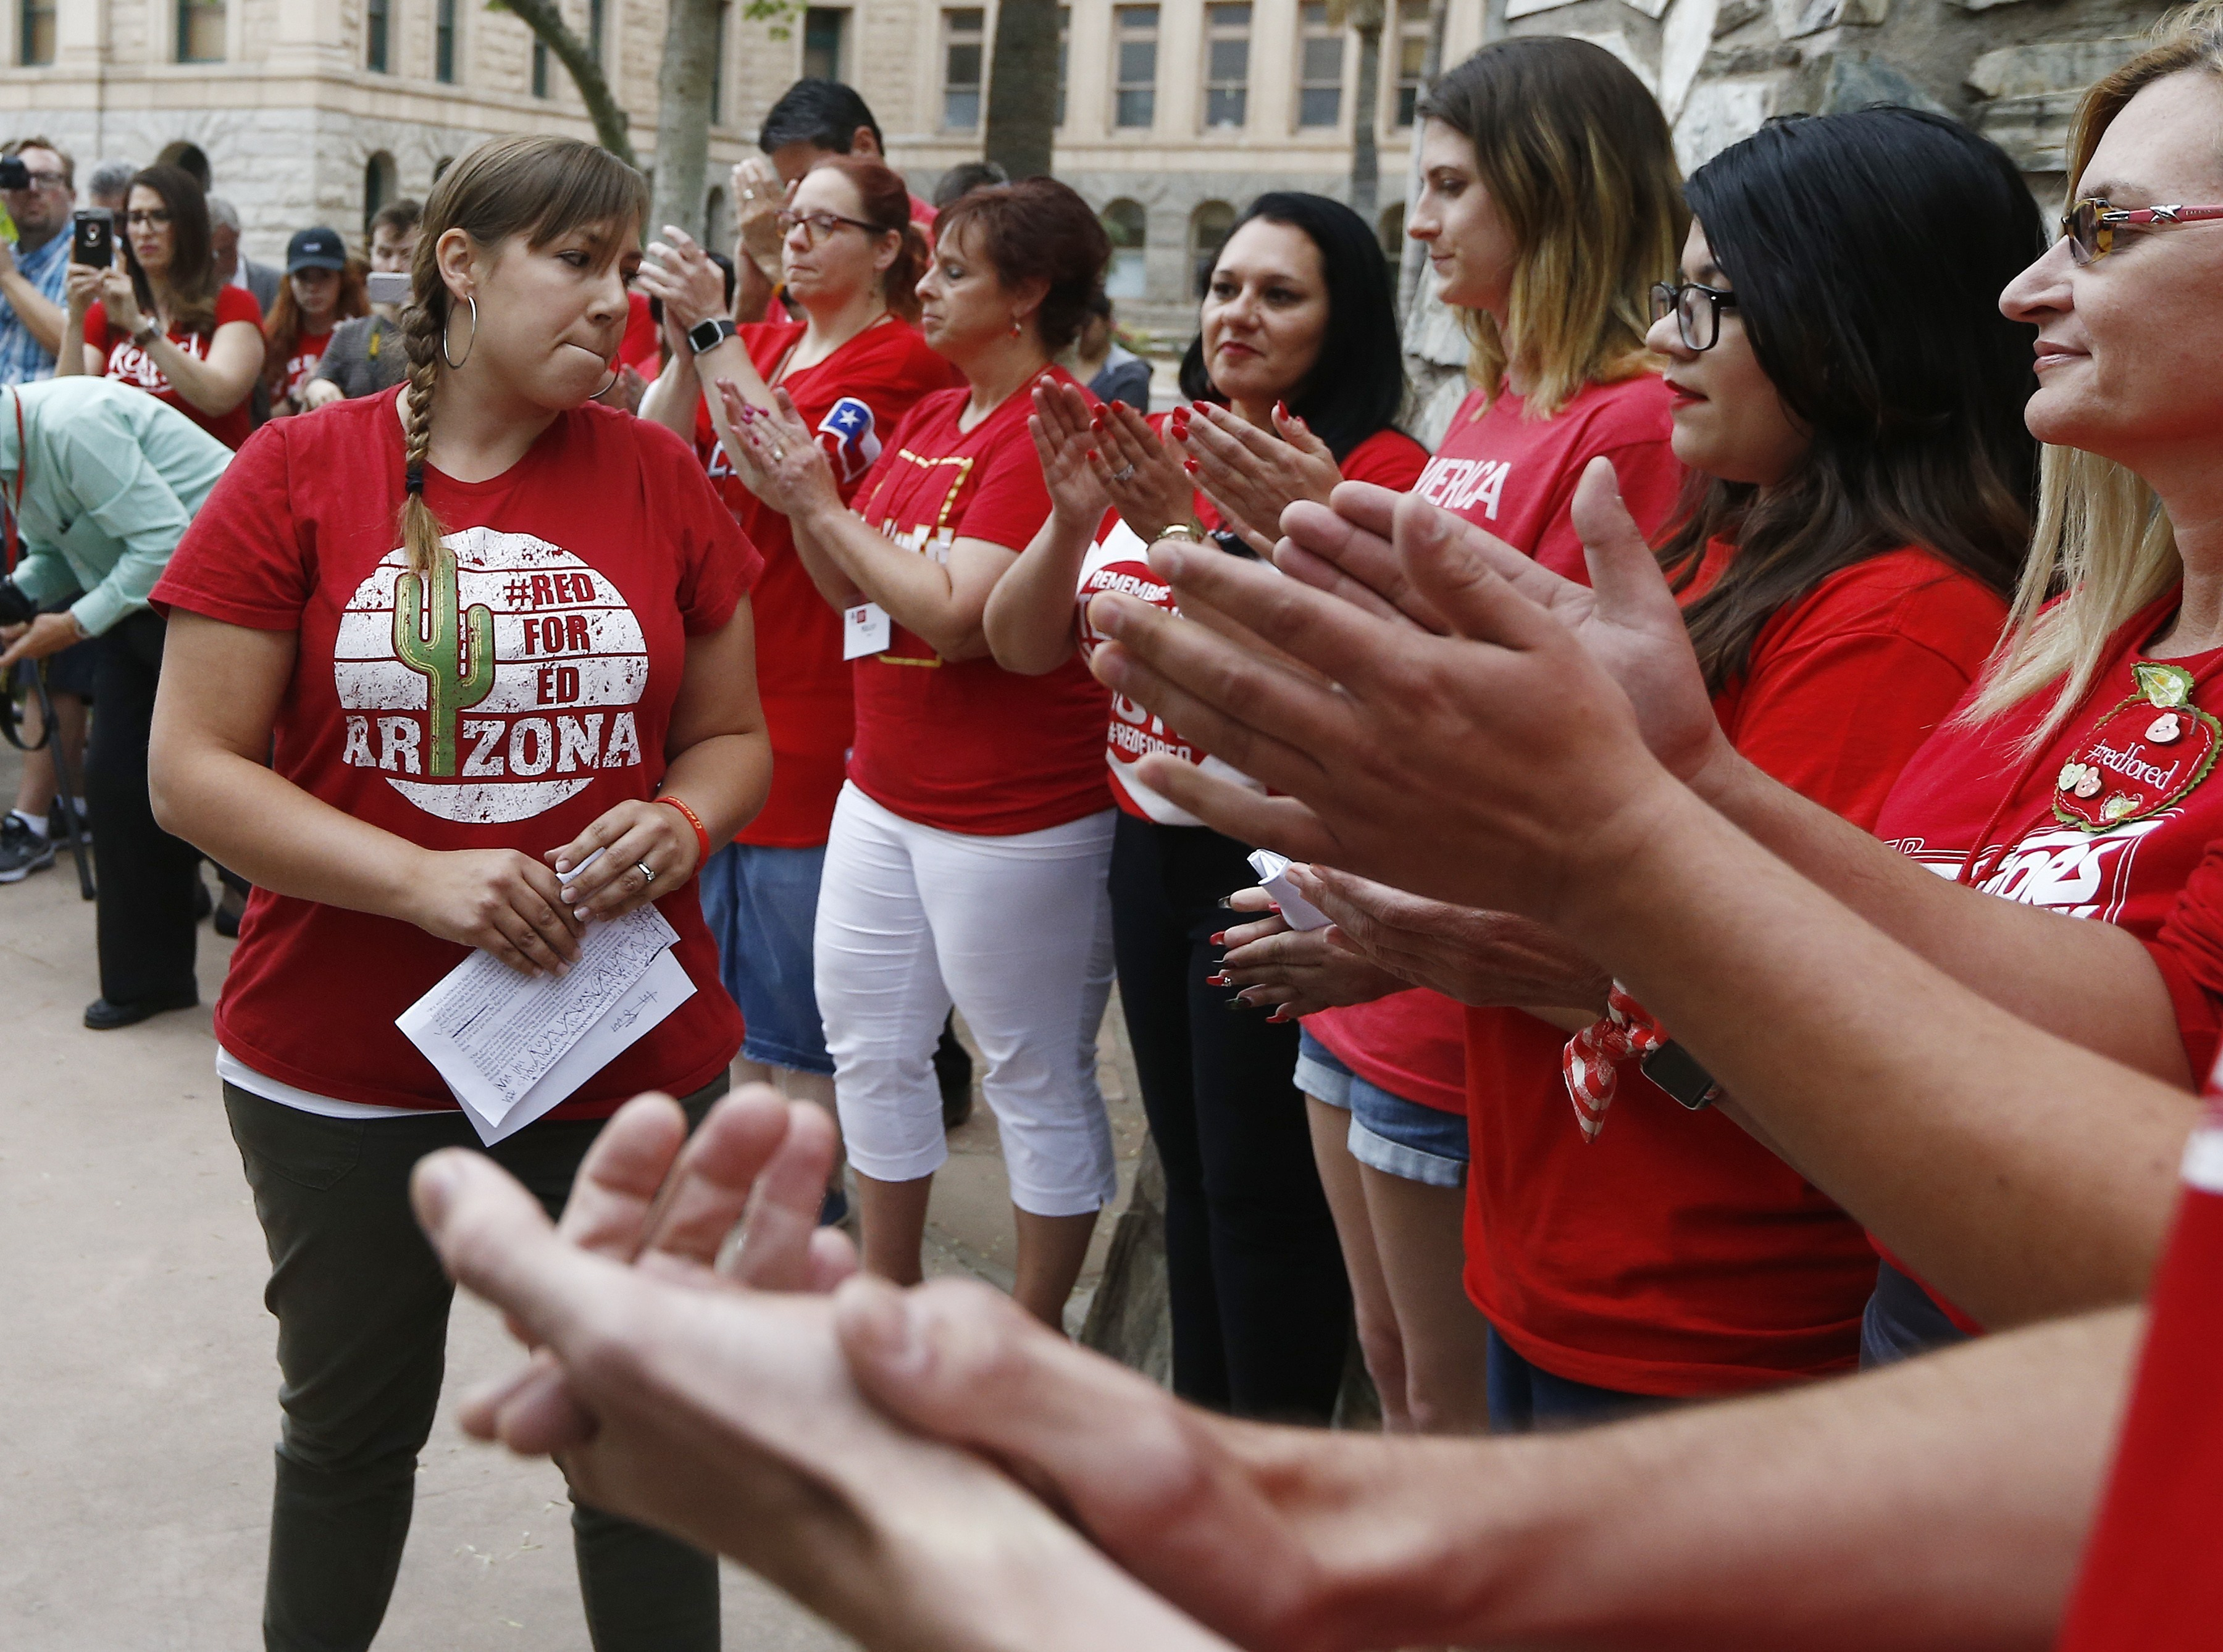 Phoenix teacher Rebecca Garelli, left, an Arizona Educators United member, is applauded after her announcement from protest organizers that teachers intend to go back to work as the statewide teachers strike enters a fourth day at the Arizona Capitol on May 1, 2018, in Phoenix.